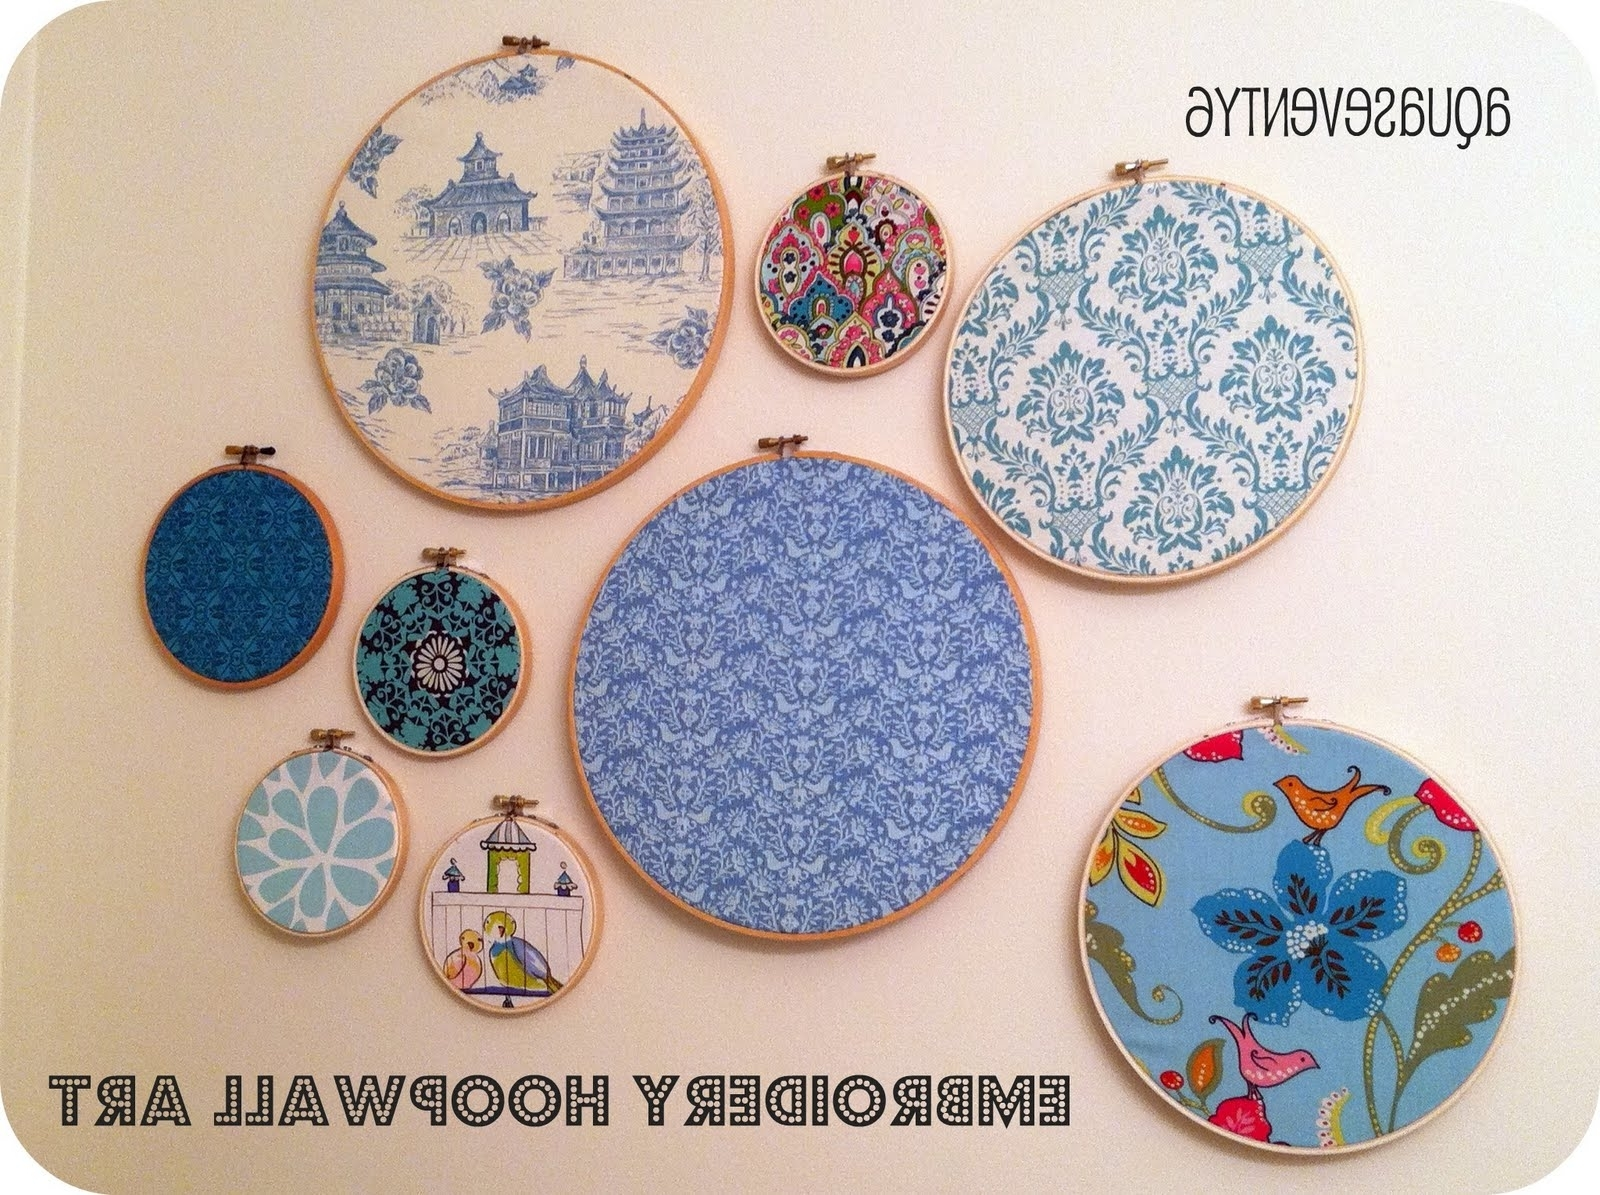 Aqua Seventy6: Embroidery Hoop Wall Art Pertaining To Popular Fabric Hoop Wall Art (Gallery 4 of 15)